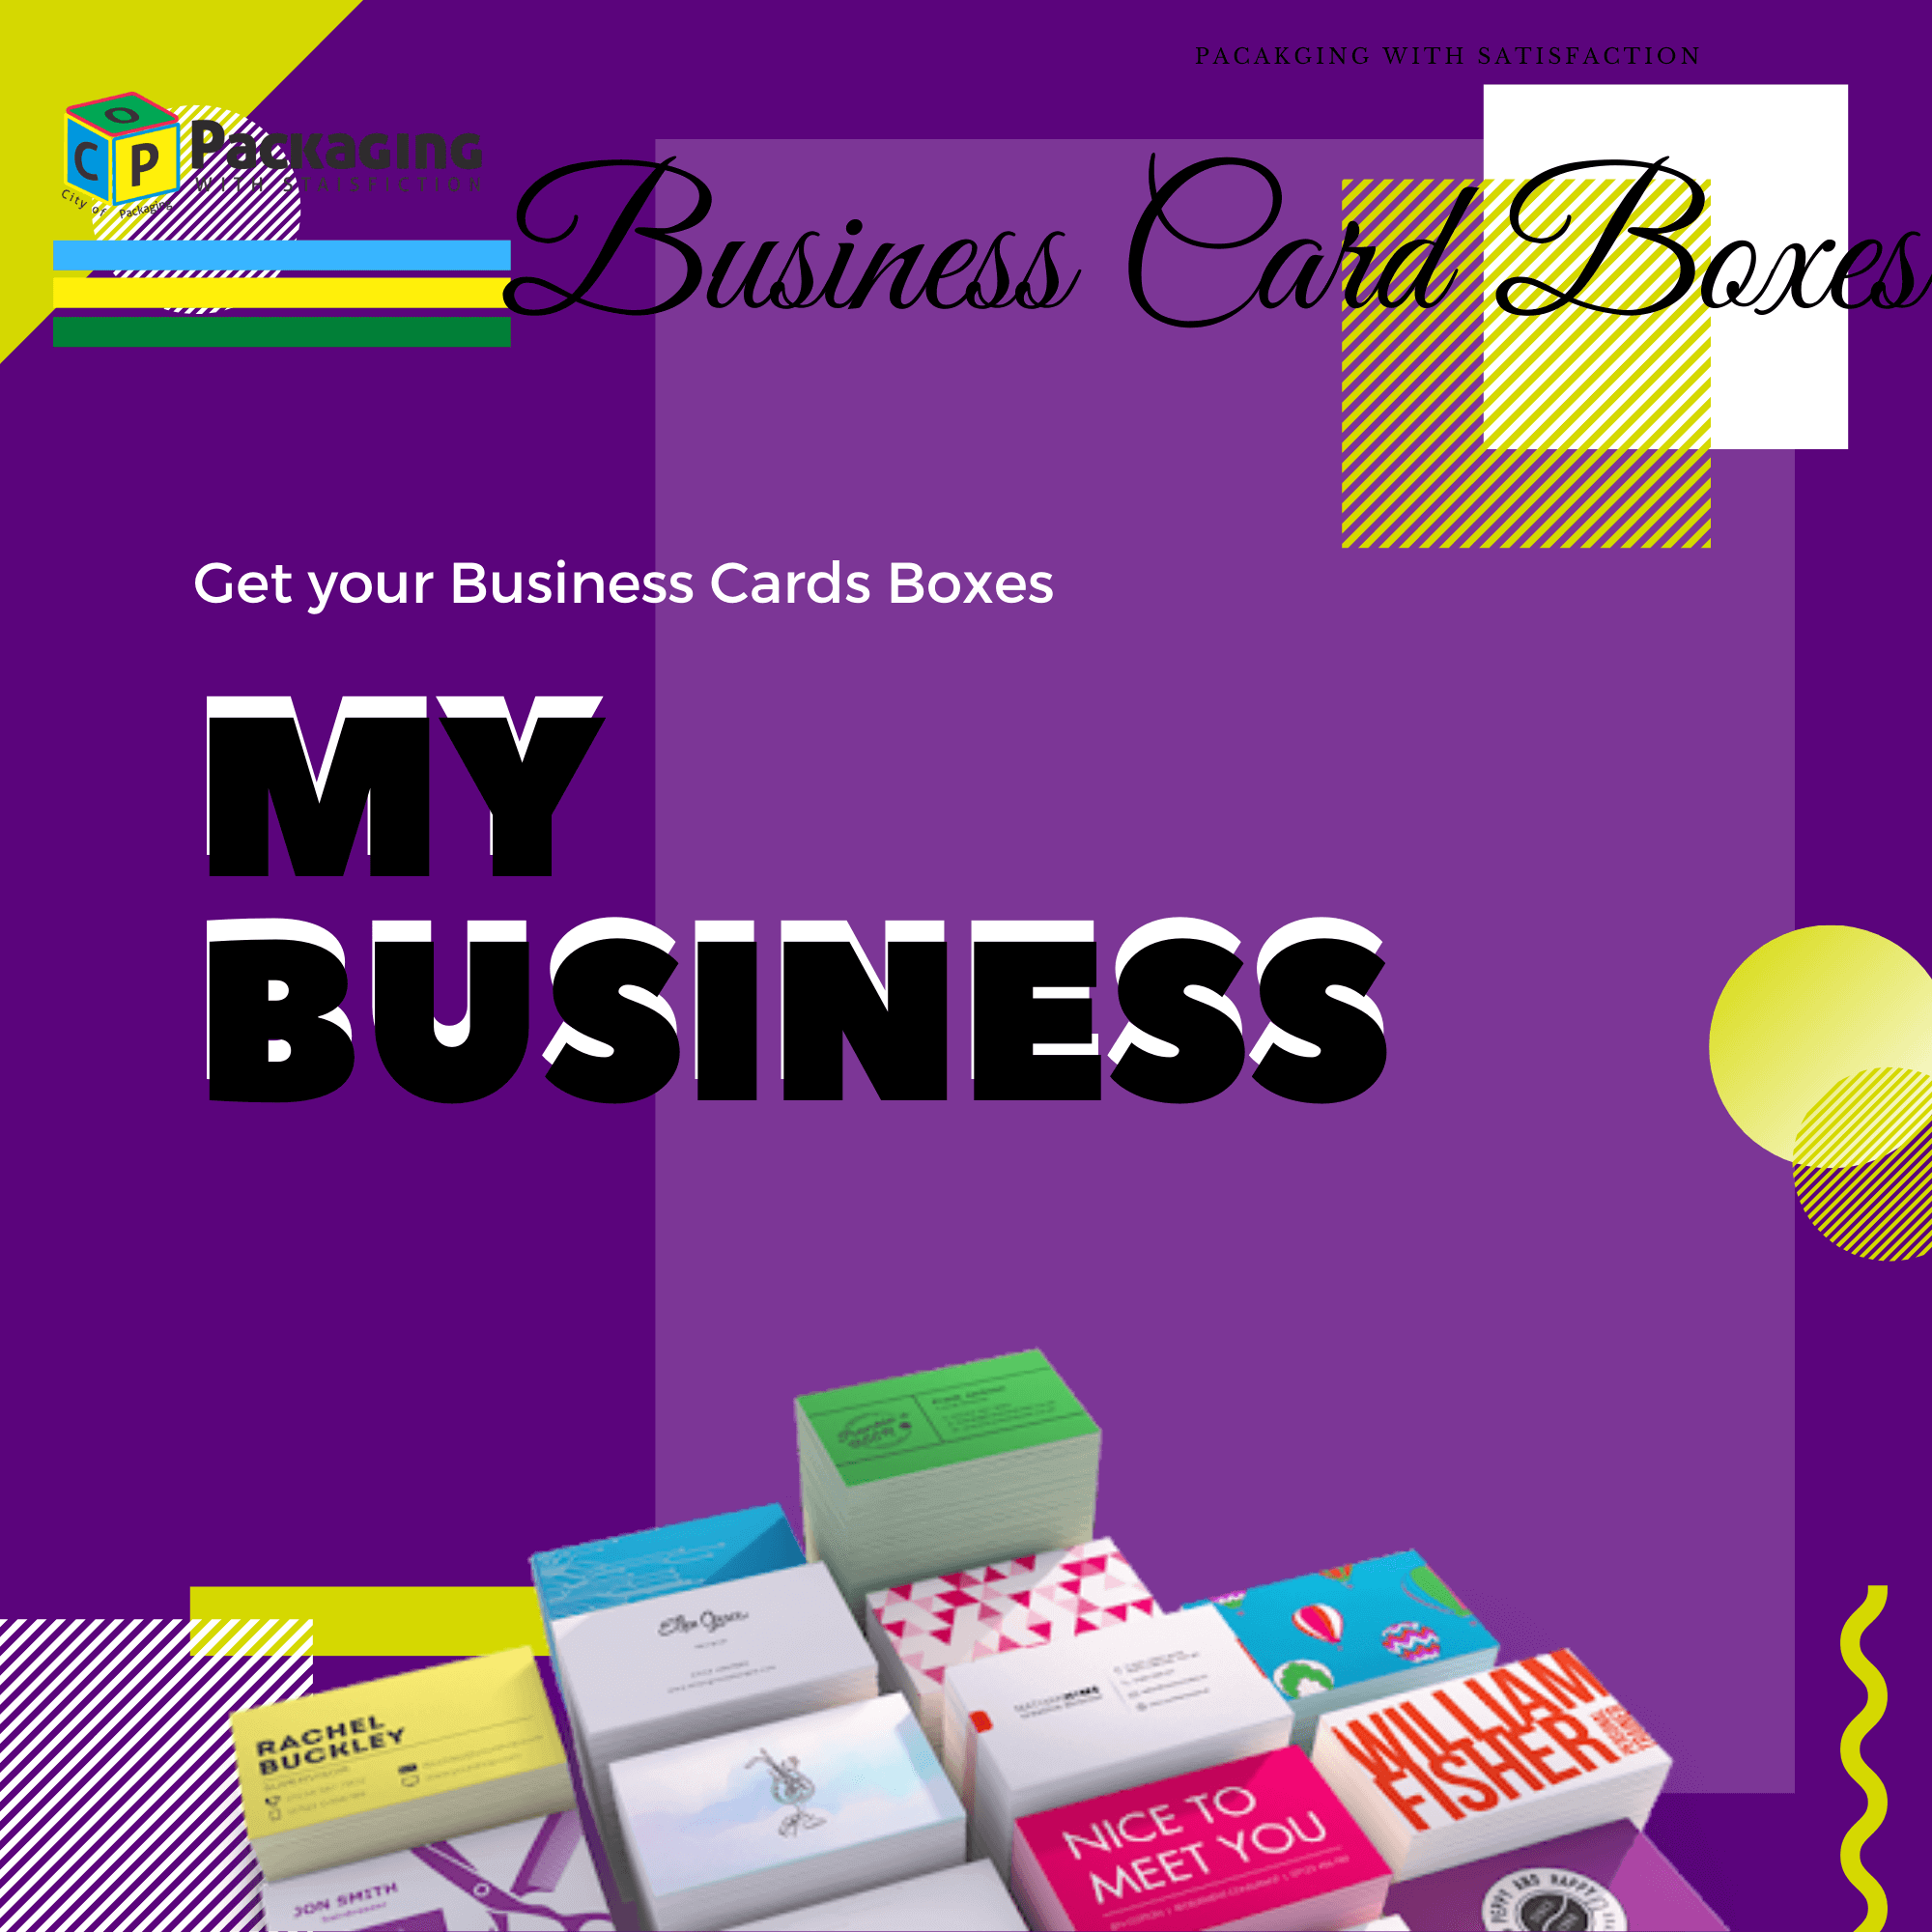 Five benefits that you would get from custom business card boxes, benefits of custom cardboard boxes